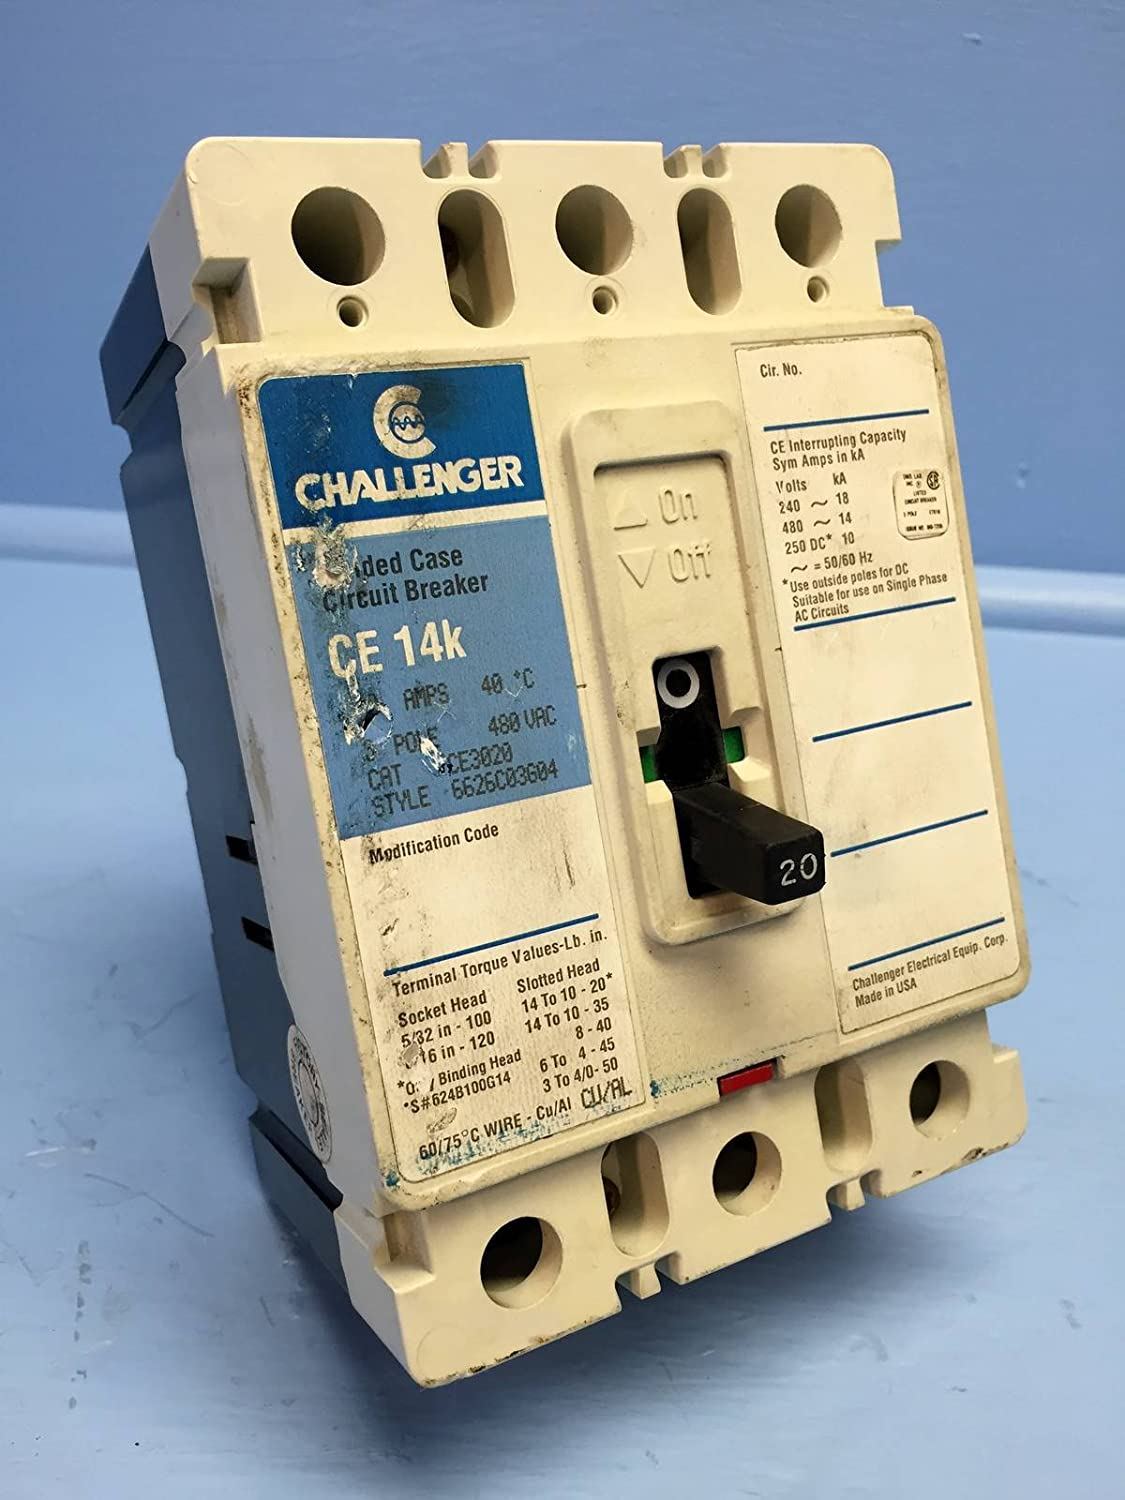 Breaker Fuse Box 50s Electrical Wiring Diagrams Outdated Challenger Ce3020 20a Circuit 480v Ce 14k Ce3020l Cutler Old Fuses